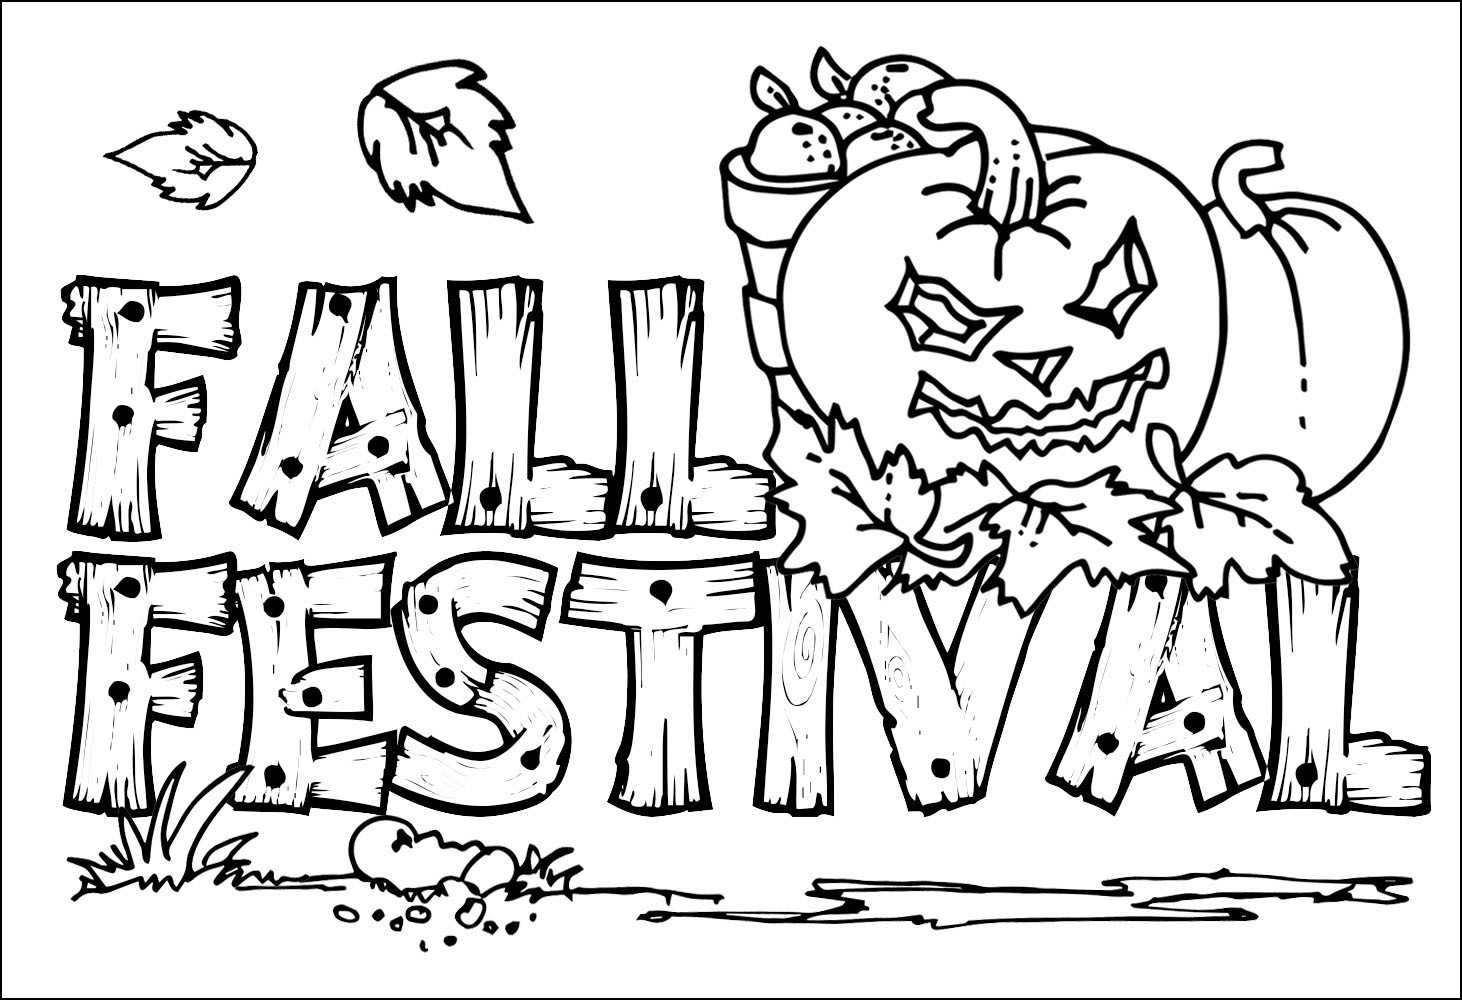 Best ideas about Free Printable Fall Coloring Pages For Kids . Save or Pin Fall Coloring Pages Now.